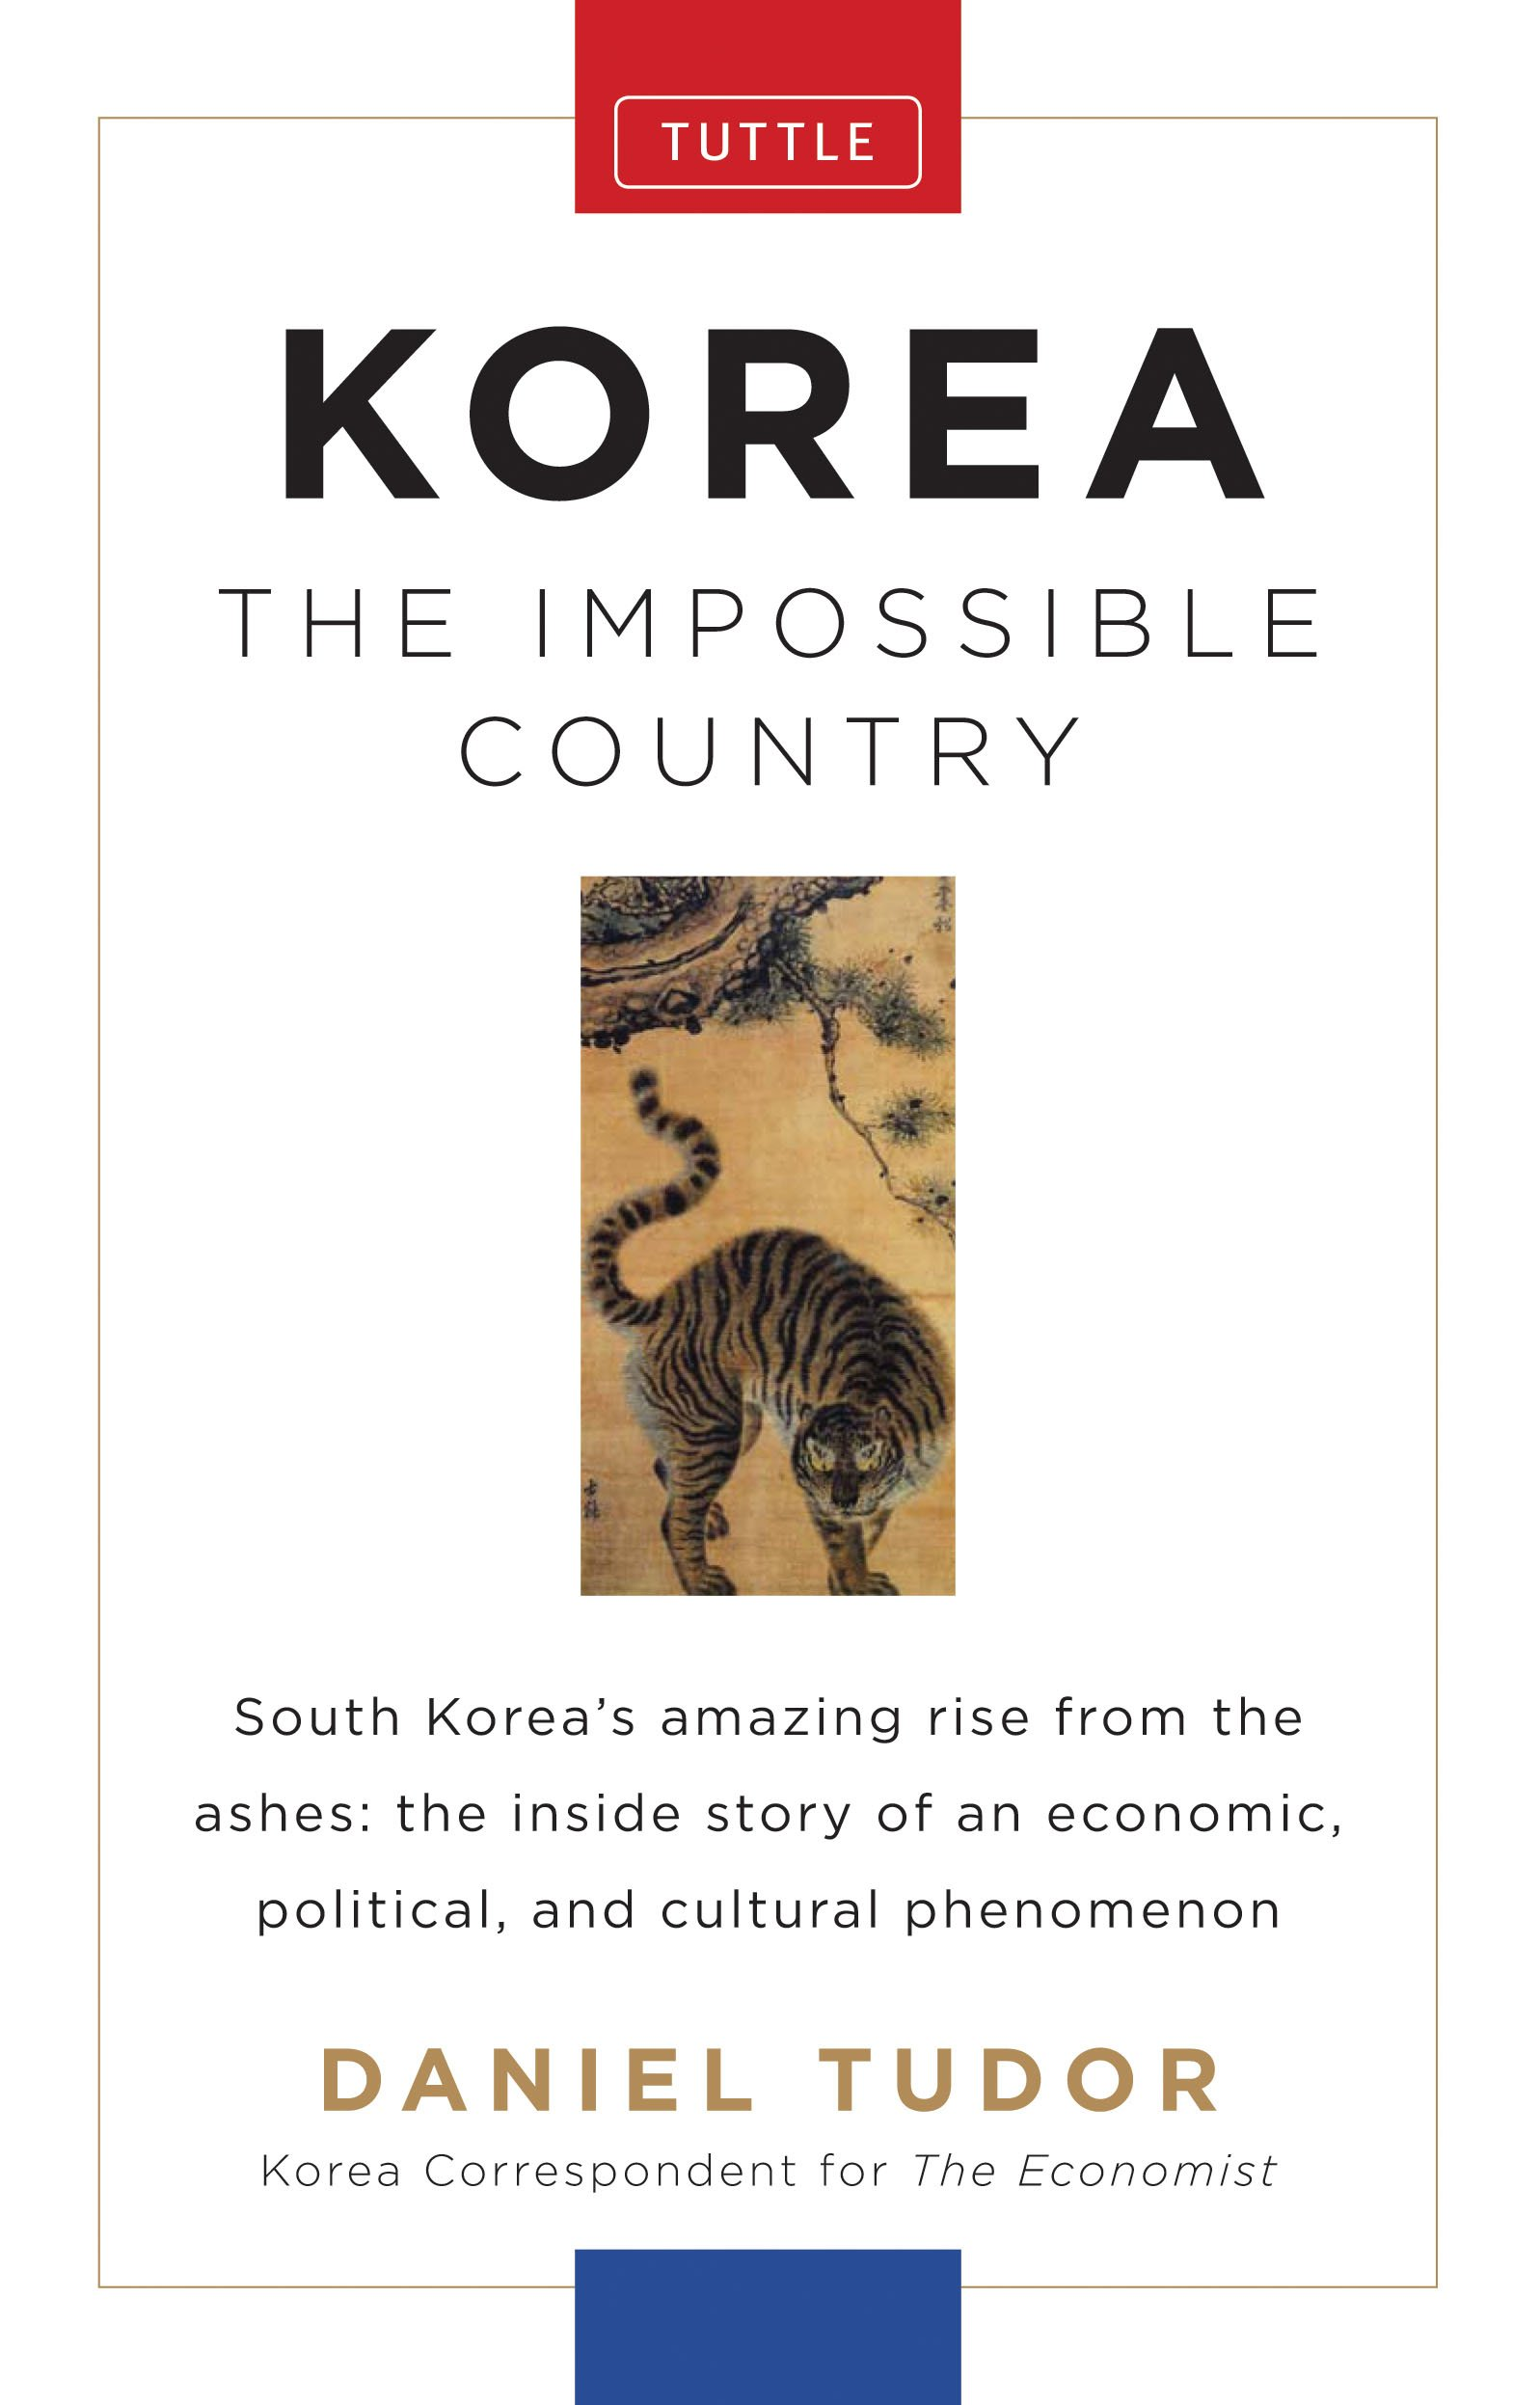 Korea: The Impossible Country Hardcover – November 10, 2012